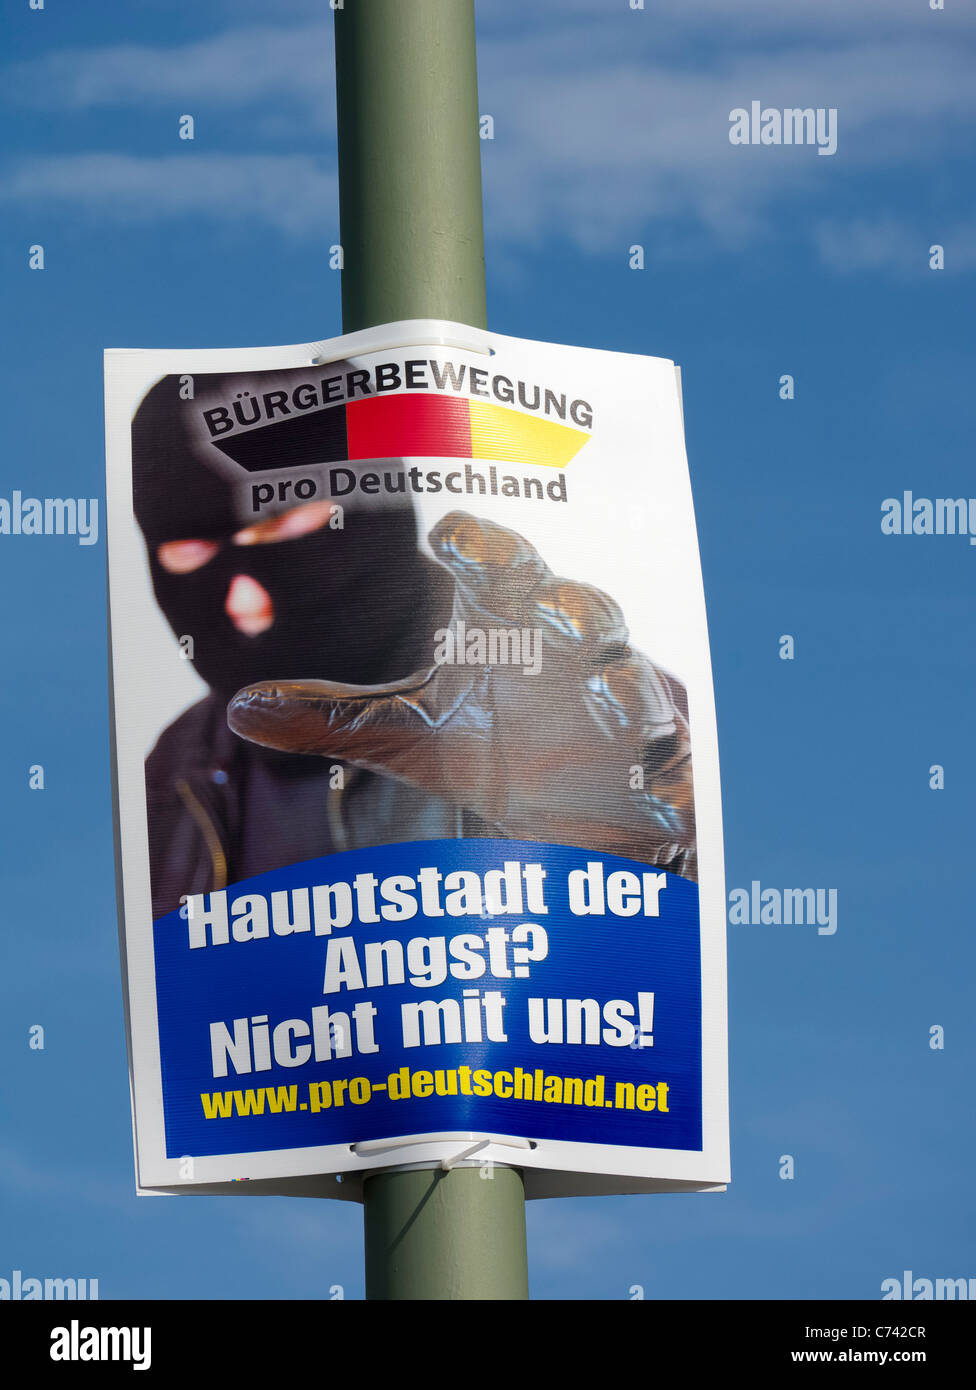 party political election poster by pro Germany Citizens' Movement Party  in Berlin Germany before elections - Stock Image